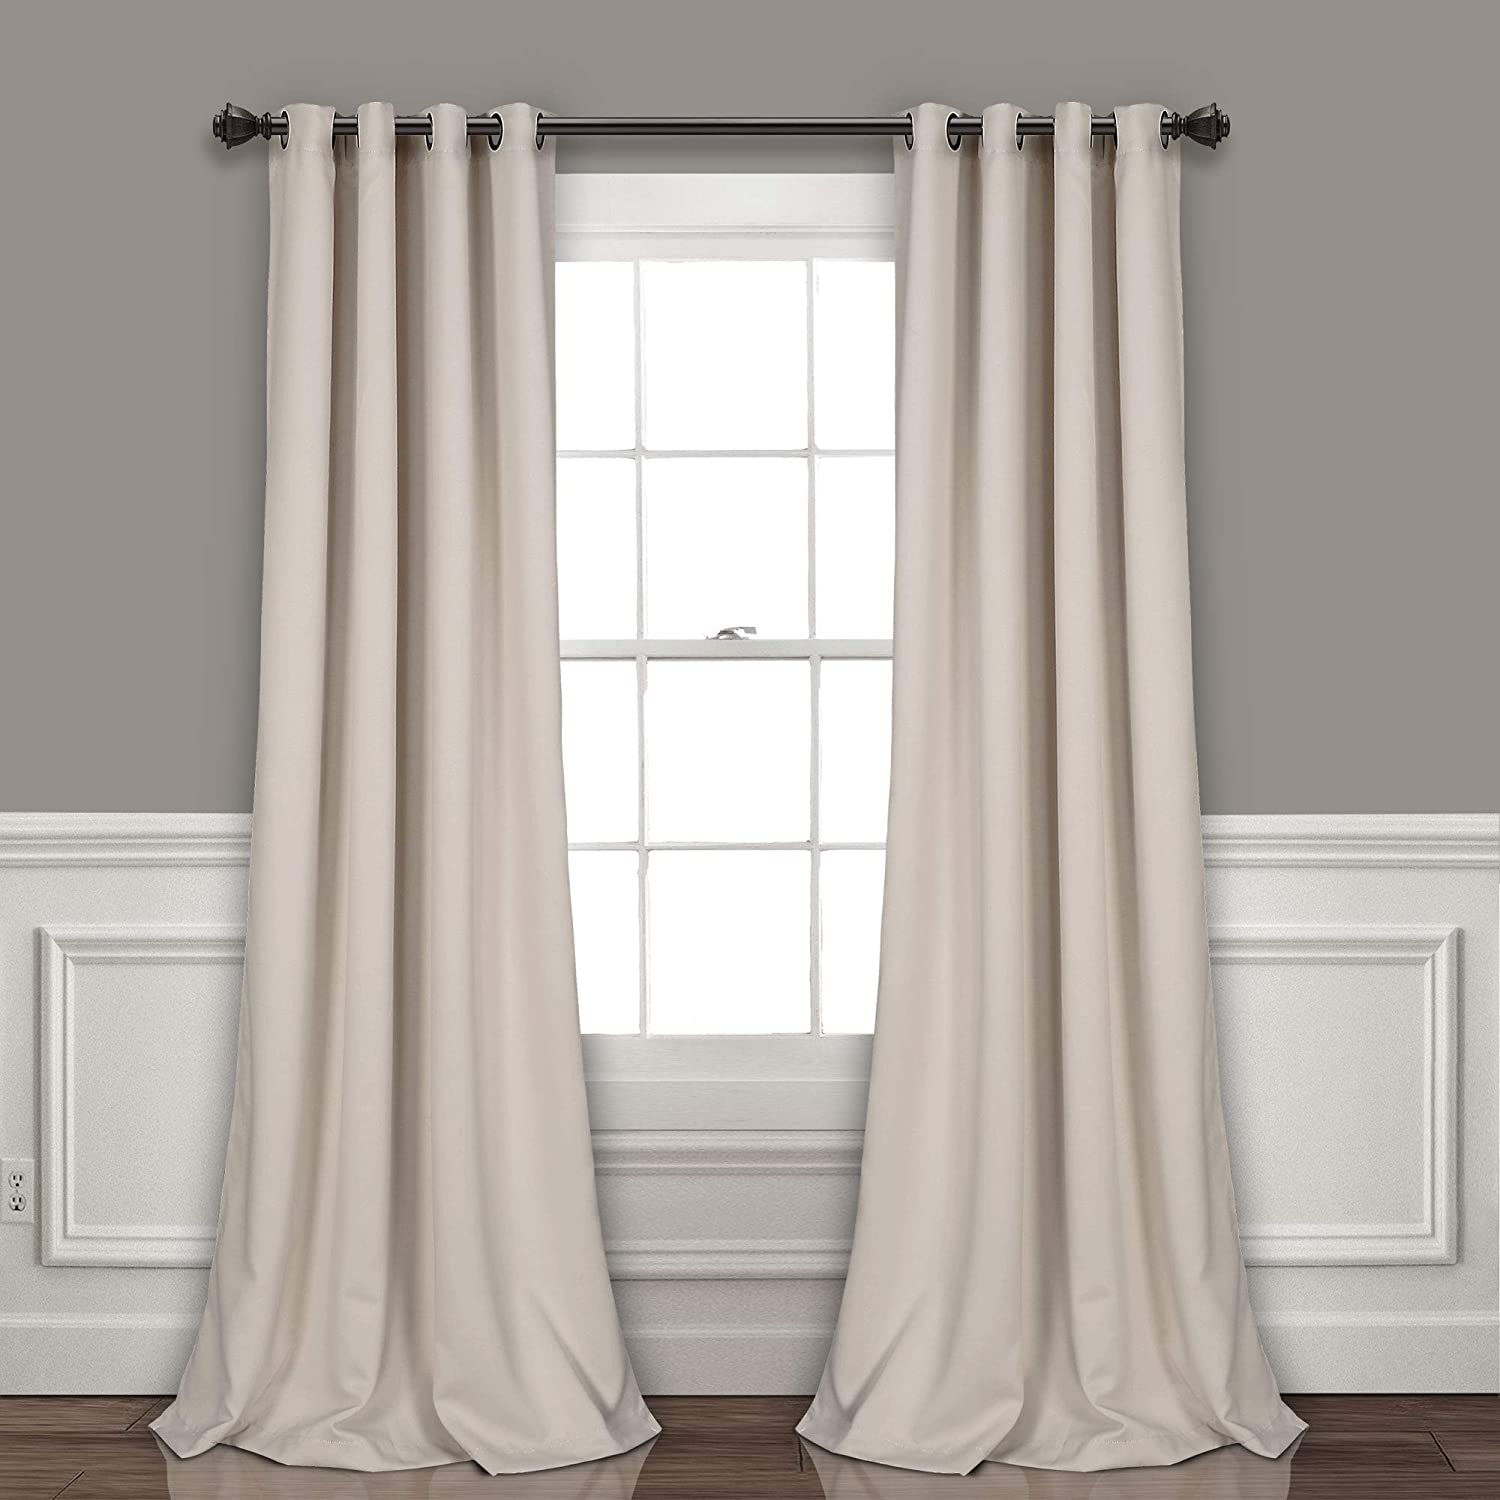 "Lush Decor Curtains-Grommet Panel with Insulated Blackout Lining, Room Darkening Window Set (Pair) 120"" x 52"" Wheat, L"